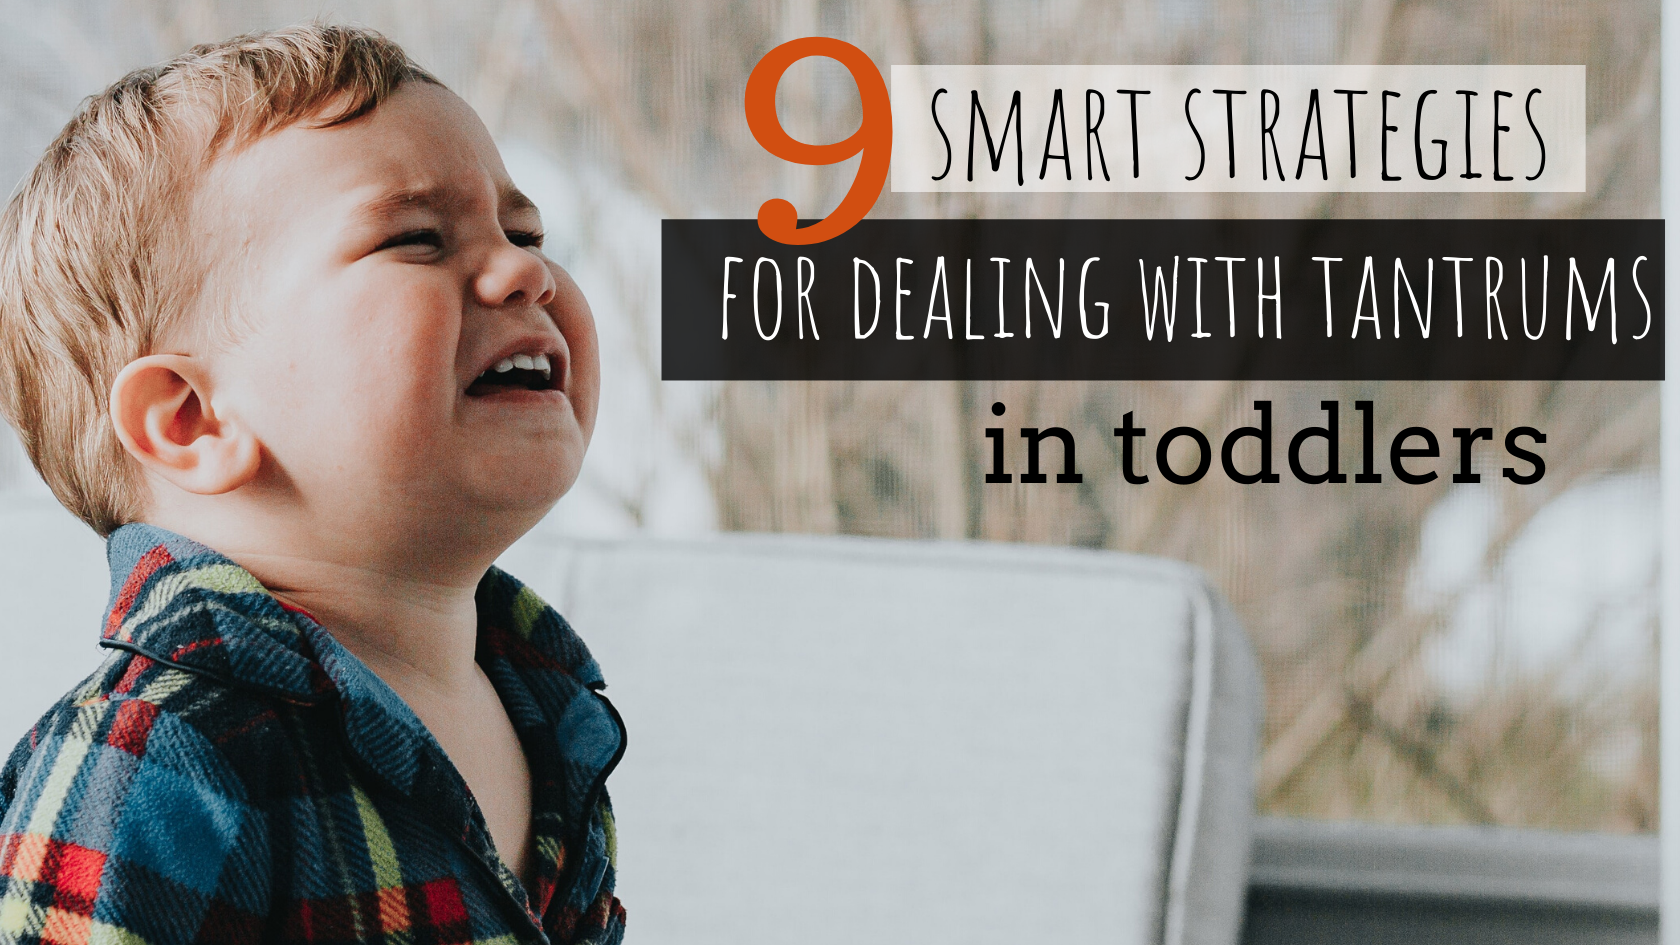 9 Smart Strategies for Dealing With Tantrums in Toddlers